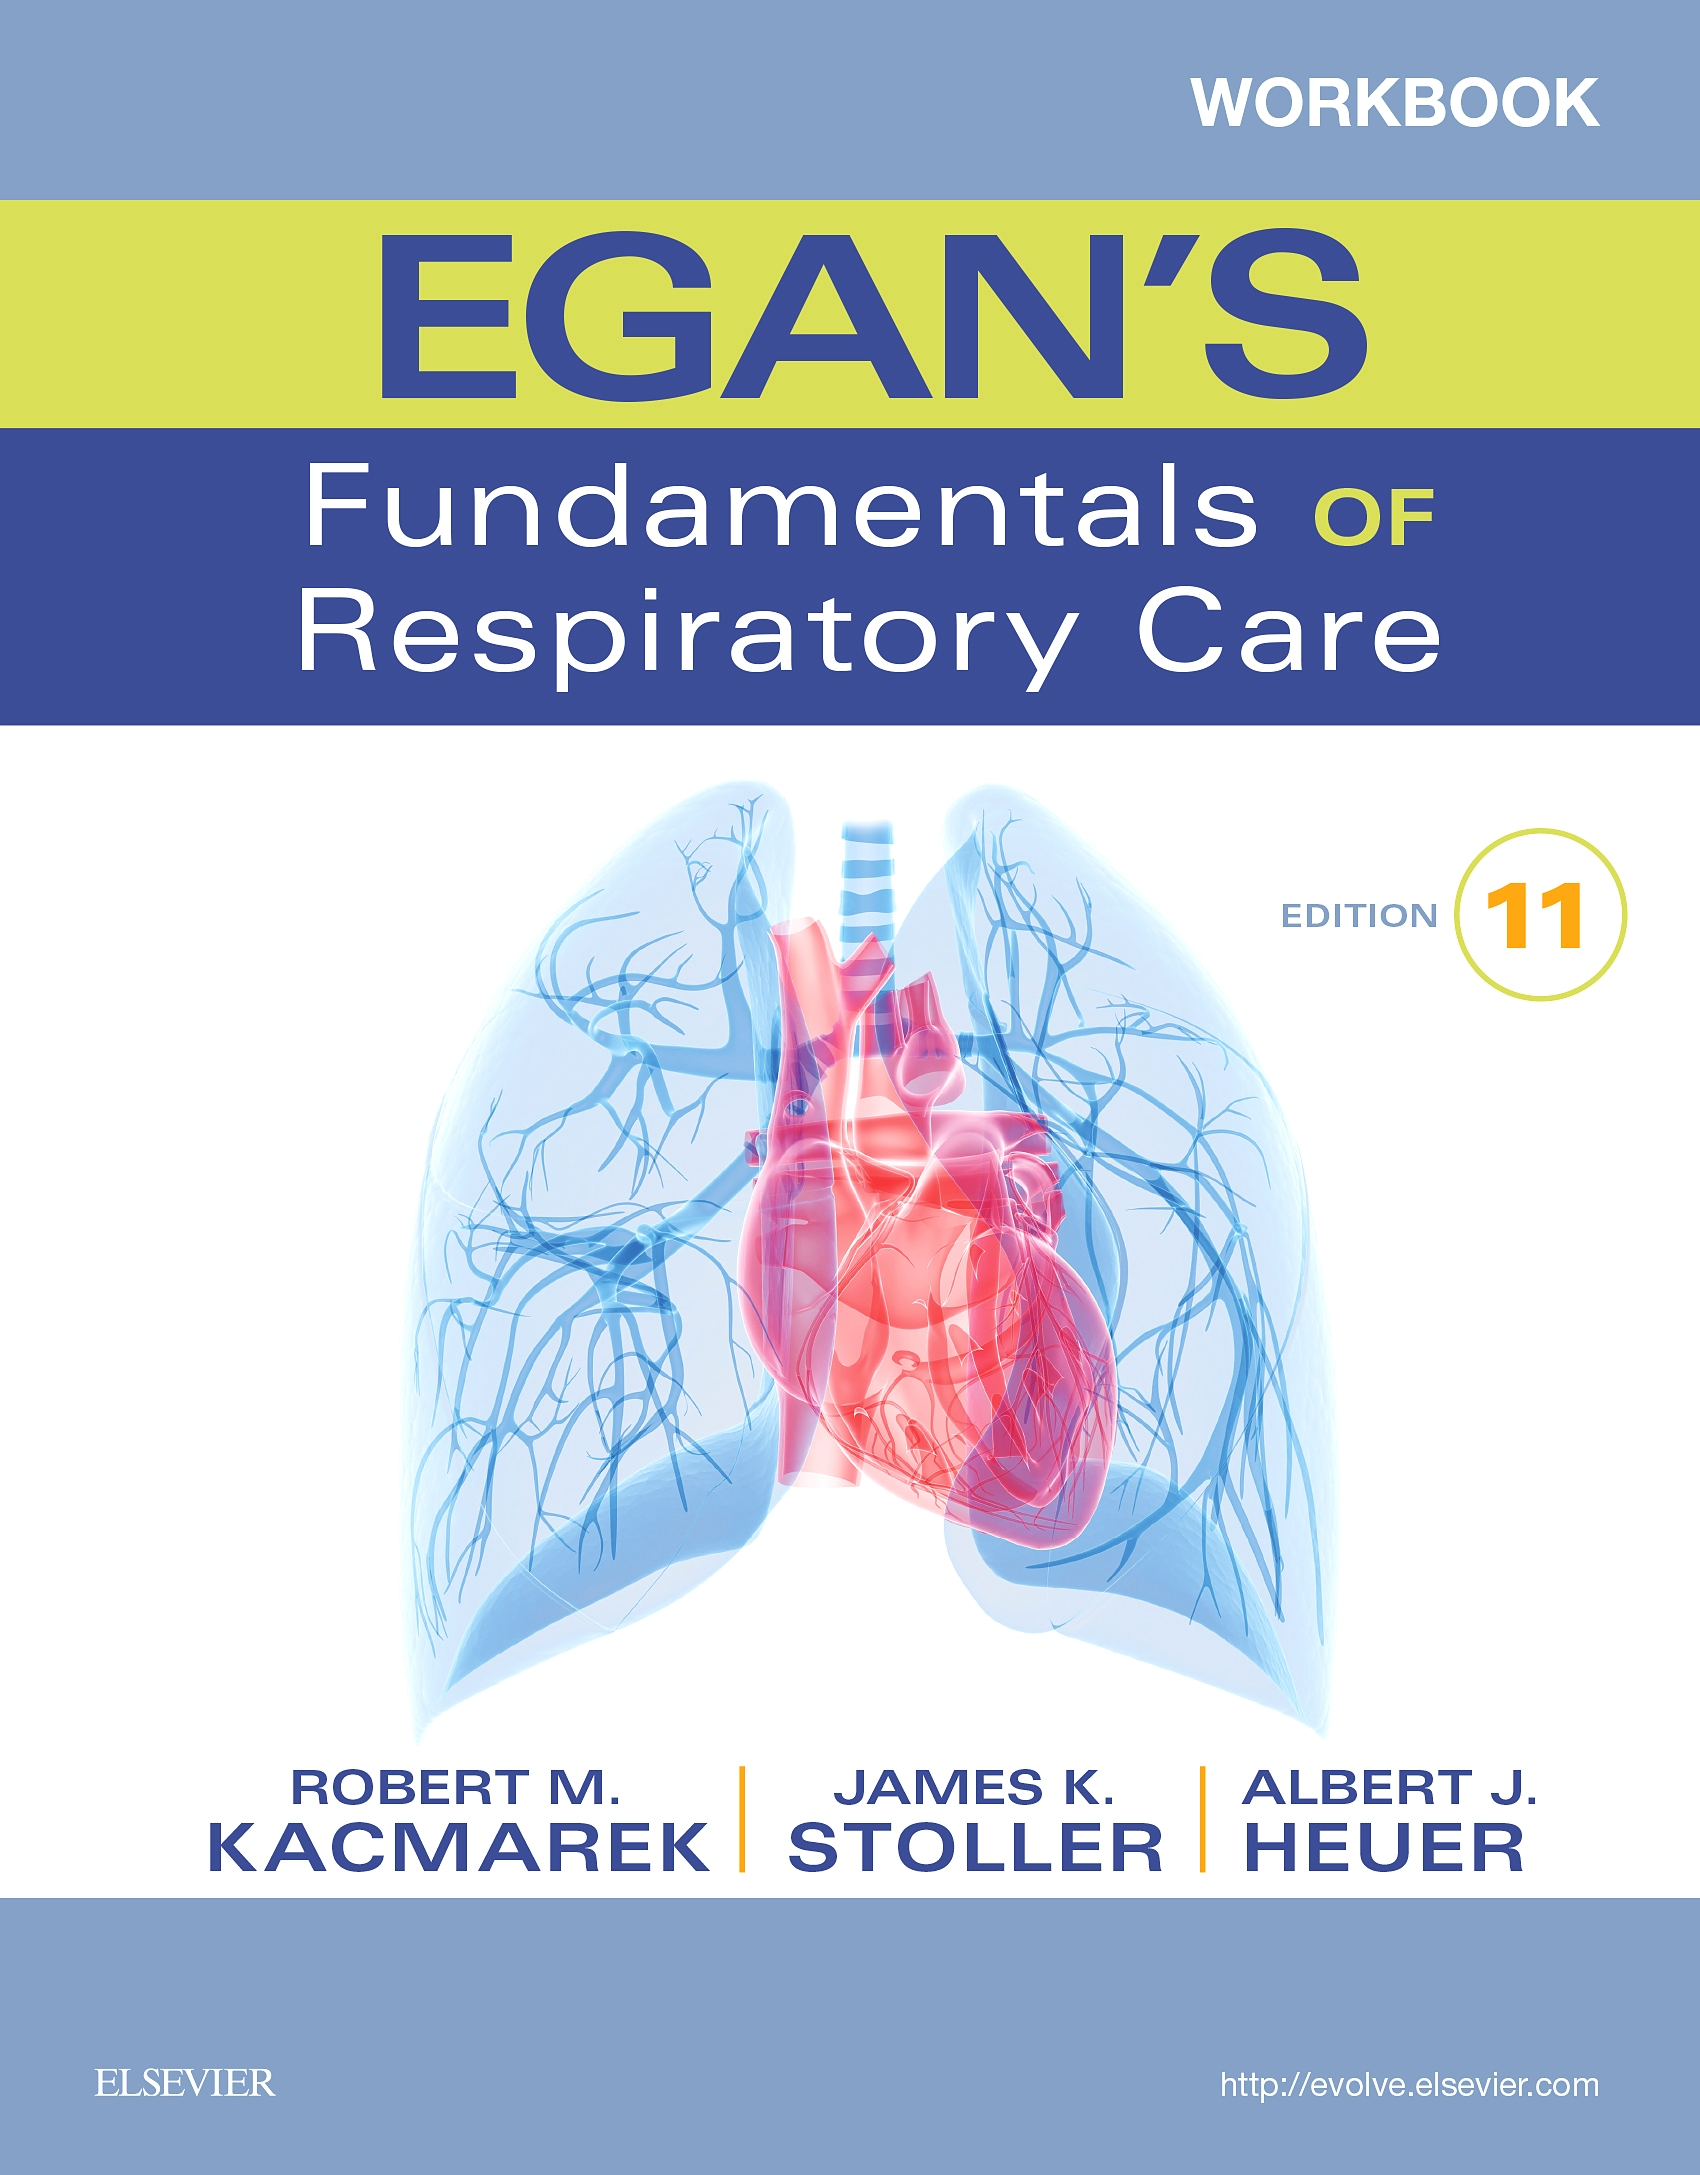 Workbook for Egan's Fundamentals of Respiratory Care - E-Book